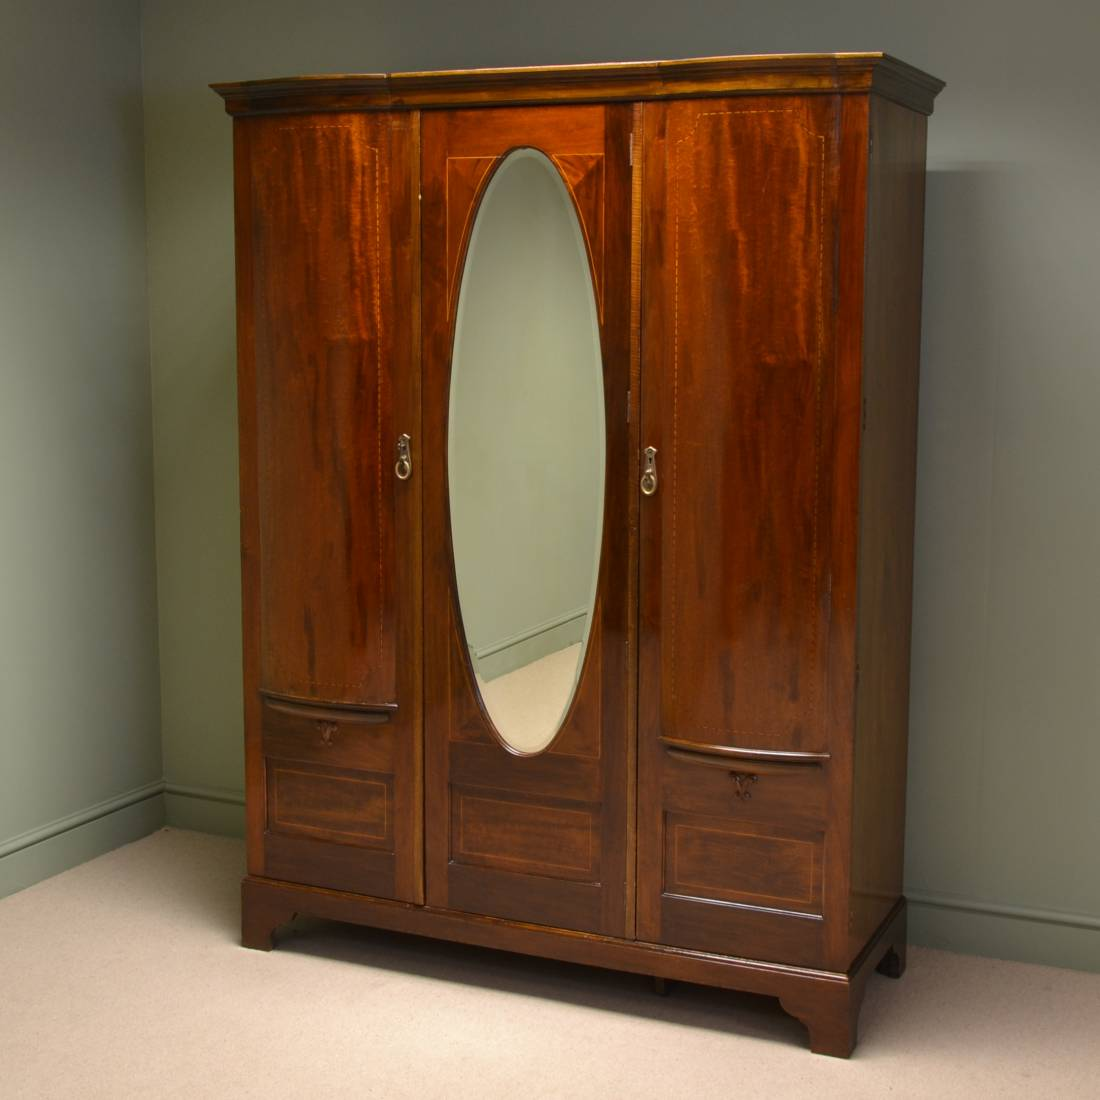 Stunning Maple & Co Inlaid Edwardian Antique Wardrobe. - Maple & Co Antique Furniture - Antiques World